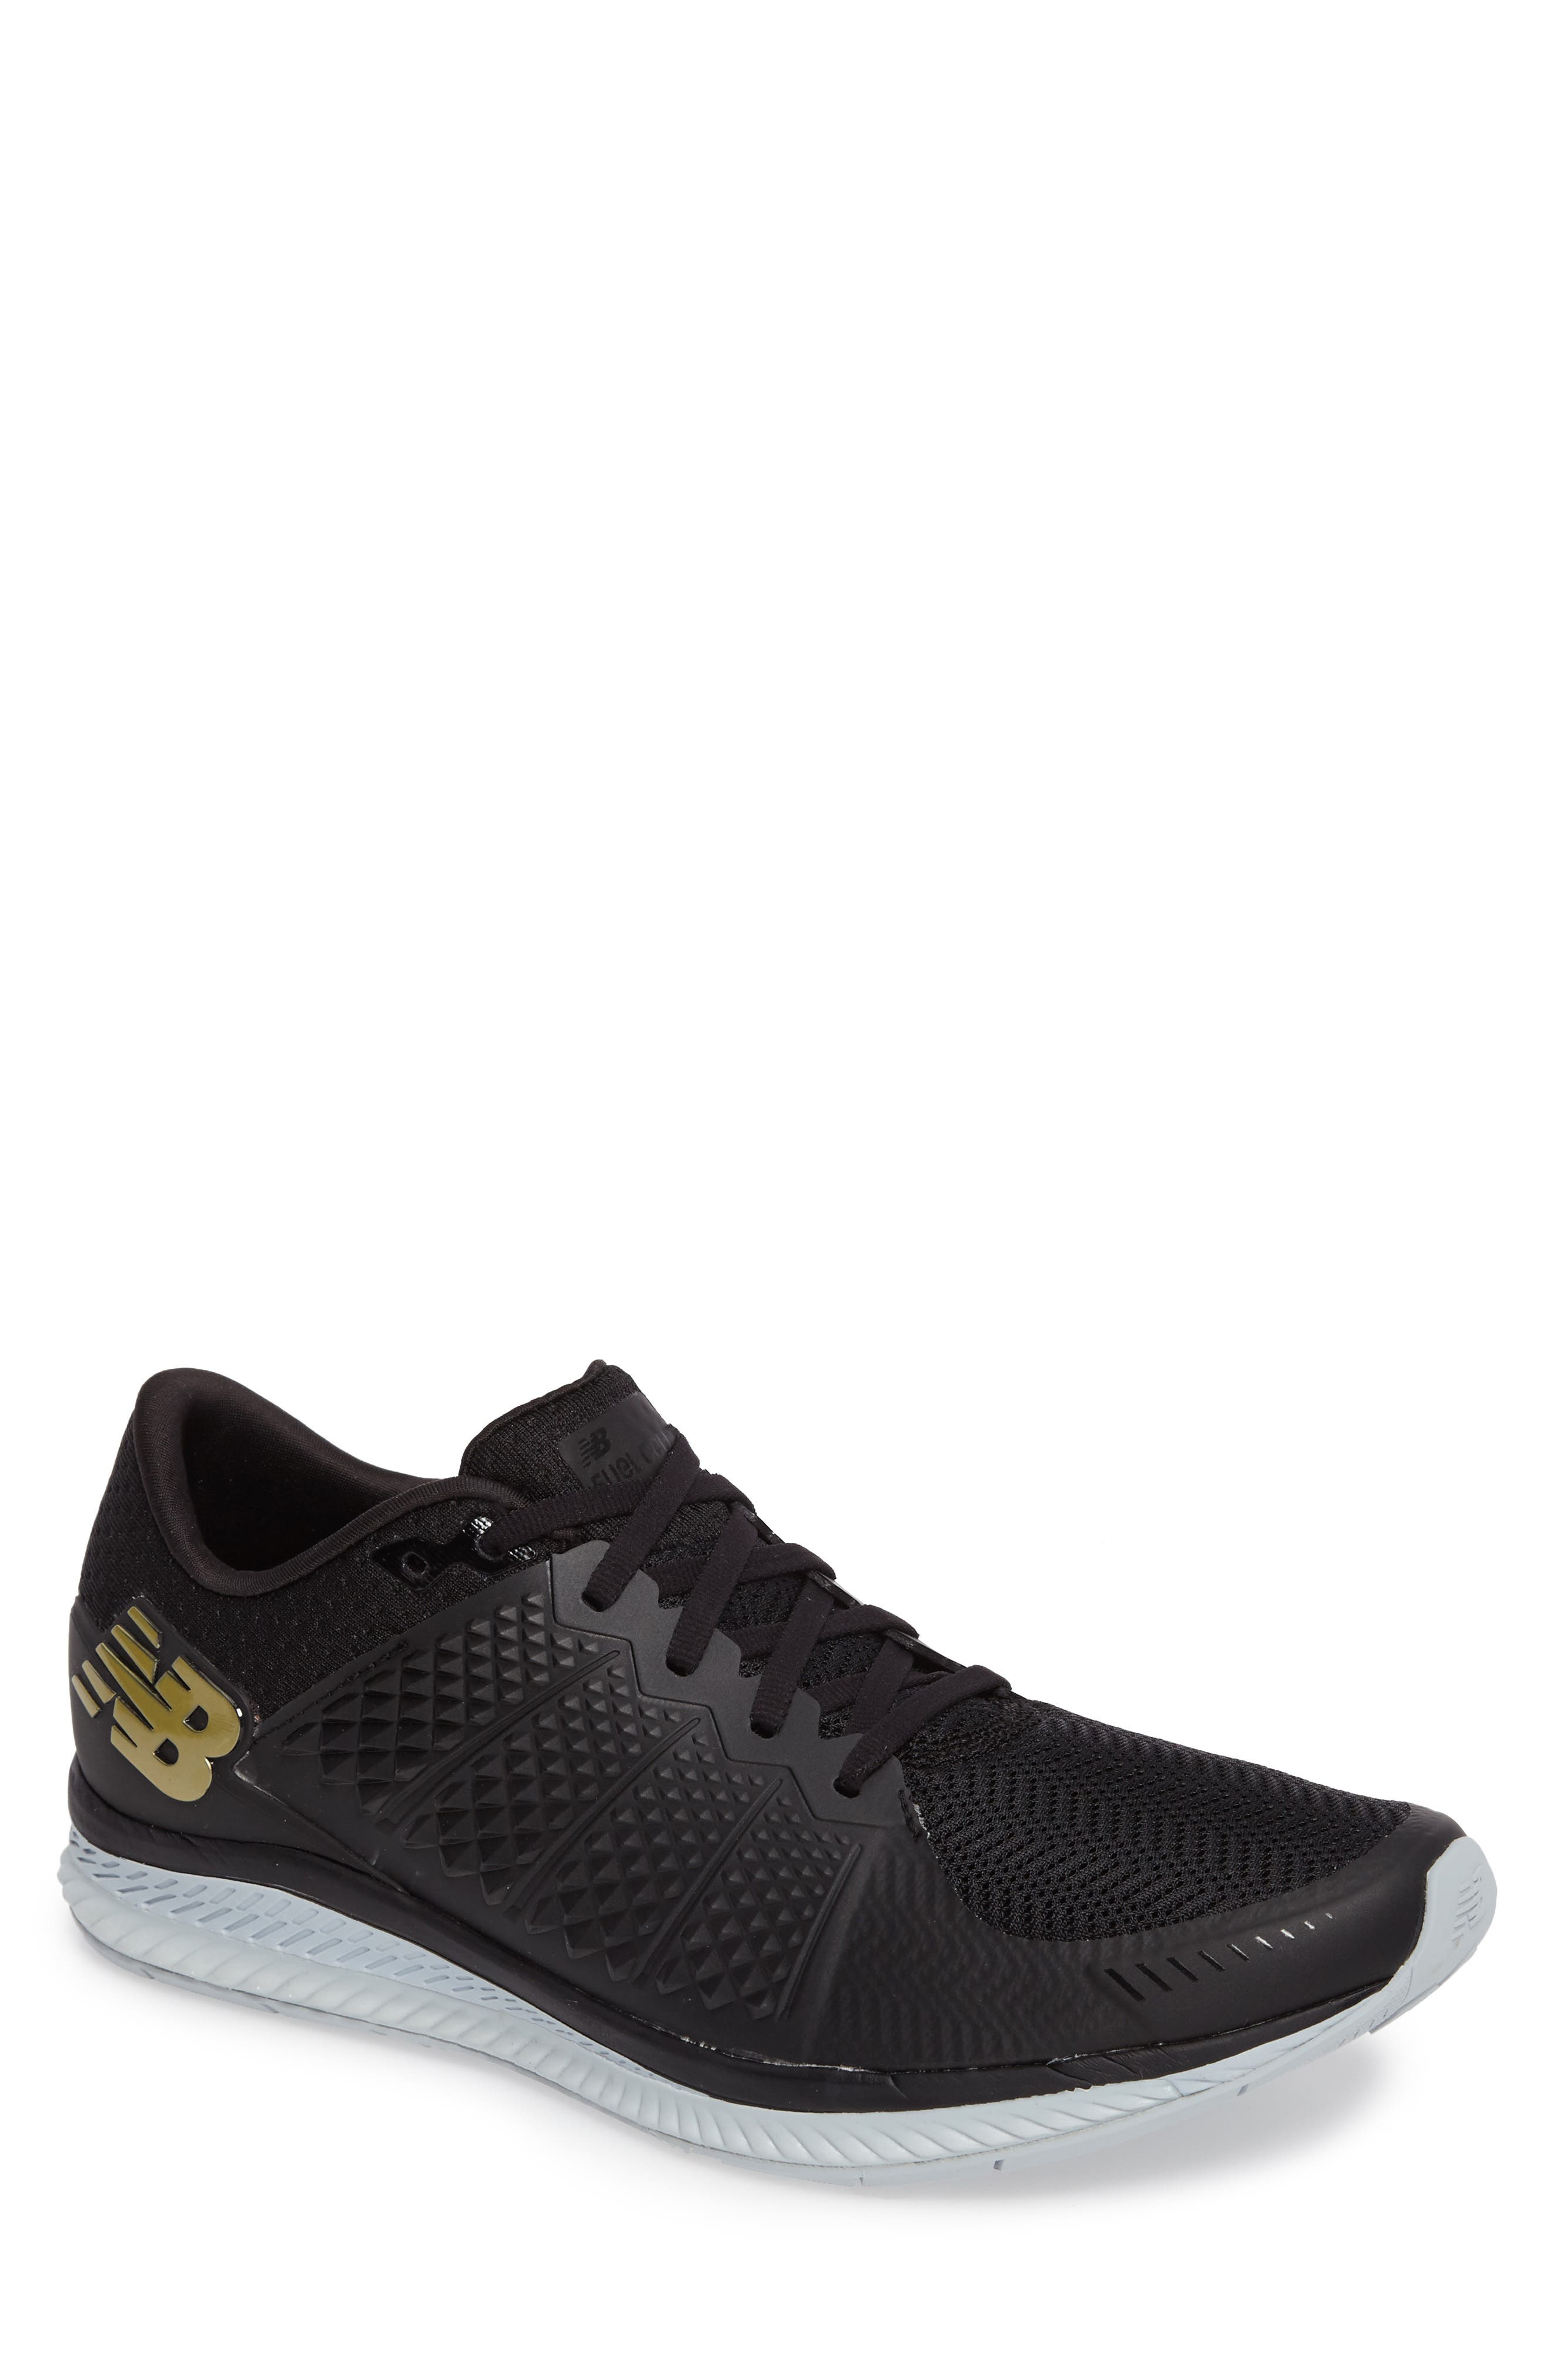 Vazee Fuel Cell Running Shoe,                             Main thumbnail 1, color,                             Black